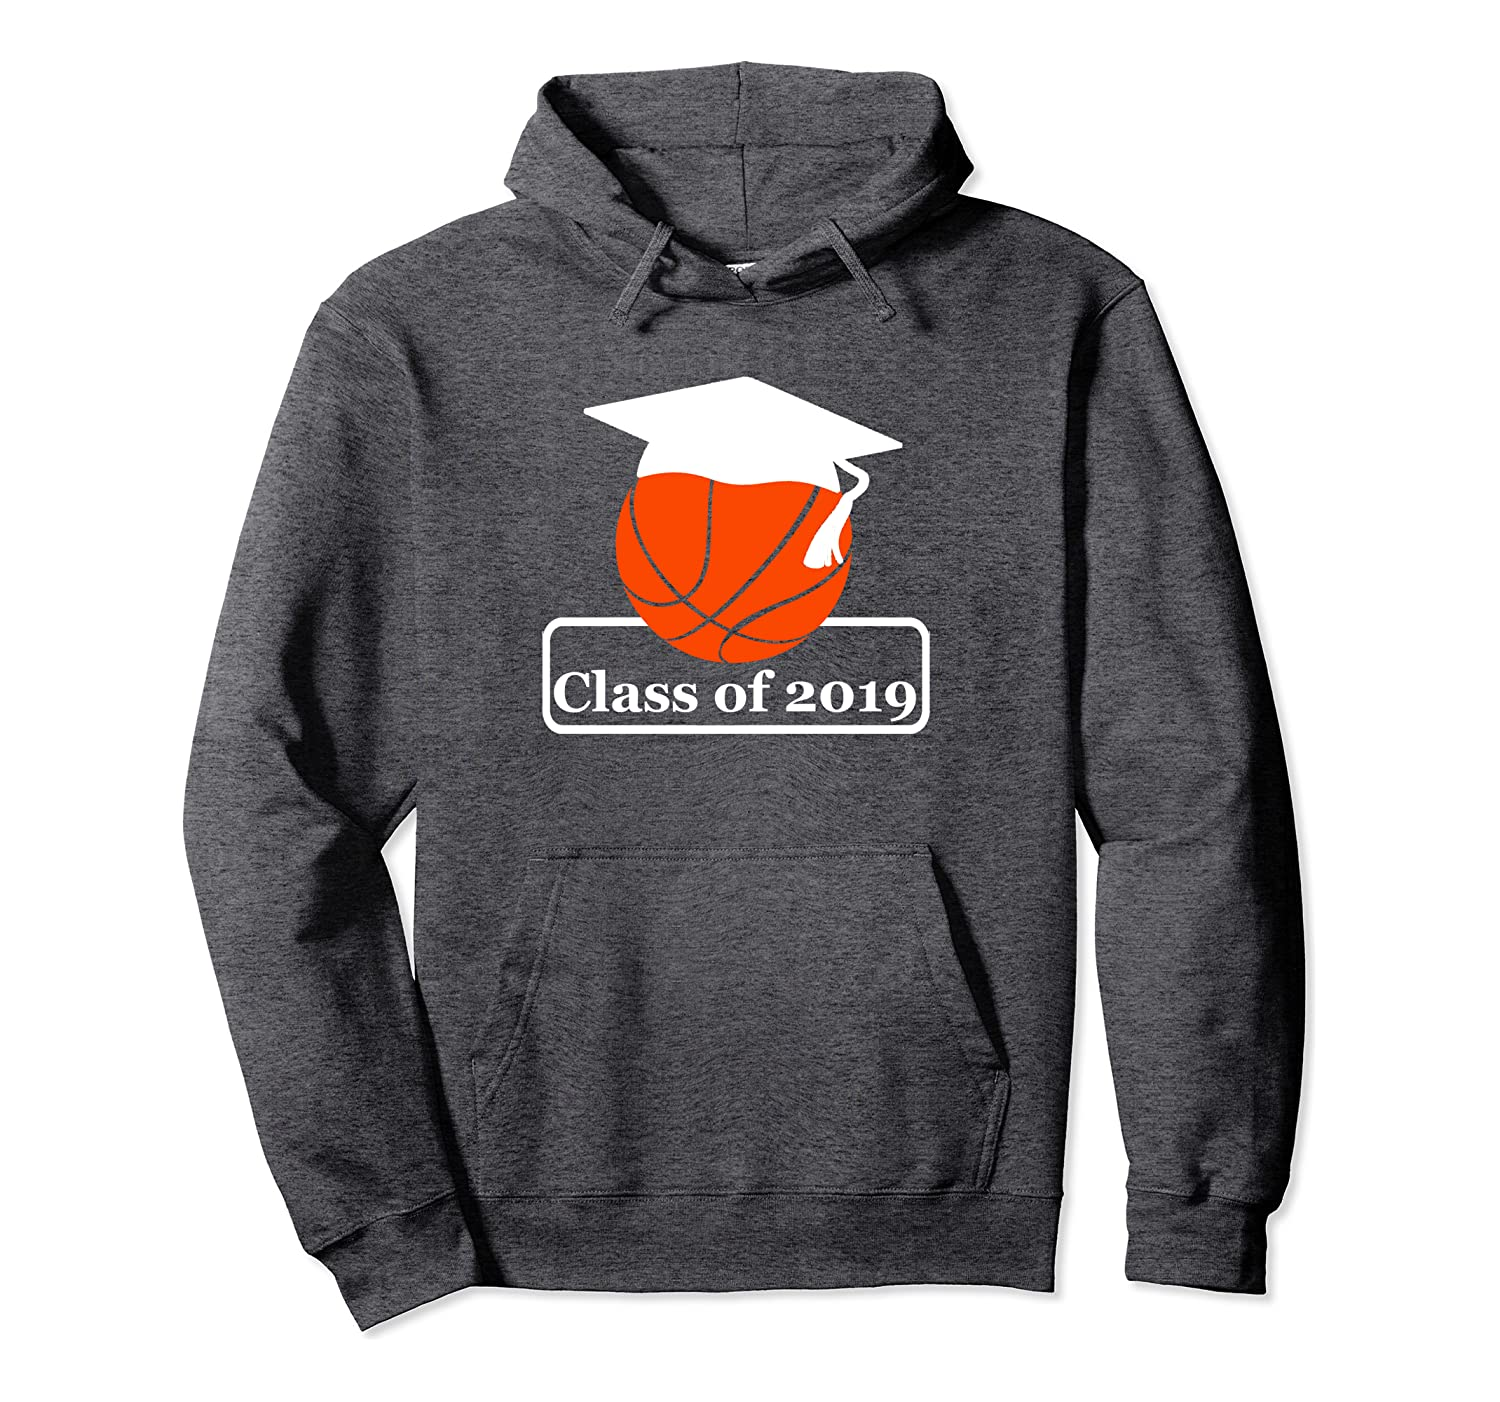 Amazon Com Class Of 2020 Basketball Senior Night Memorable Gifts Ideas Pullover Hoodie Clothing